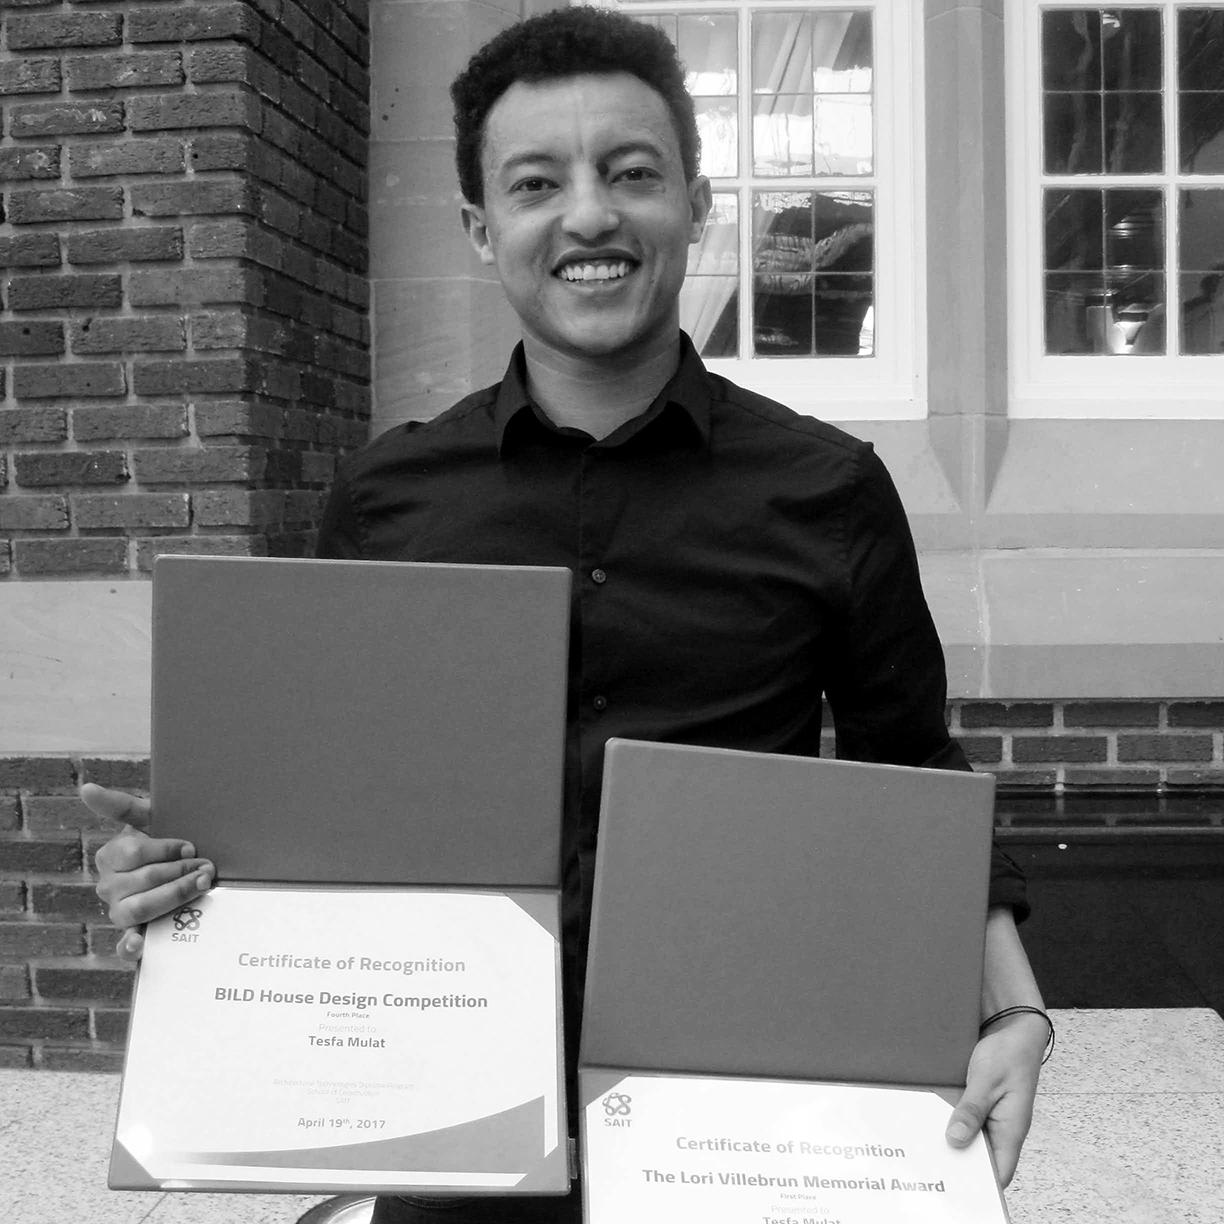 EiABC Class of '14 Alumnus, Tesfamariam Mulat, Wins Two Awards at his Graduate School